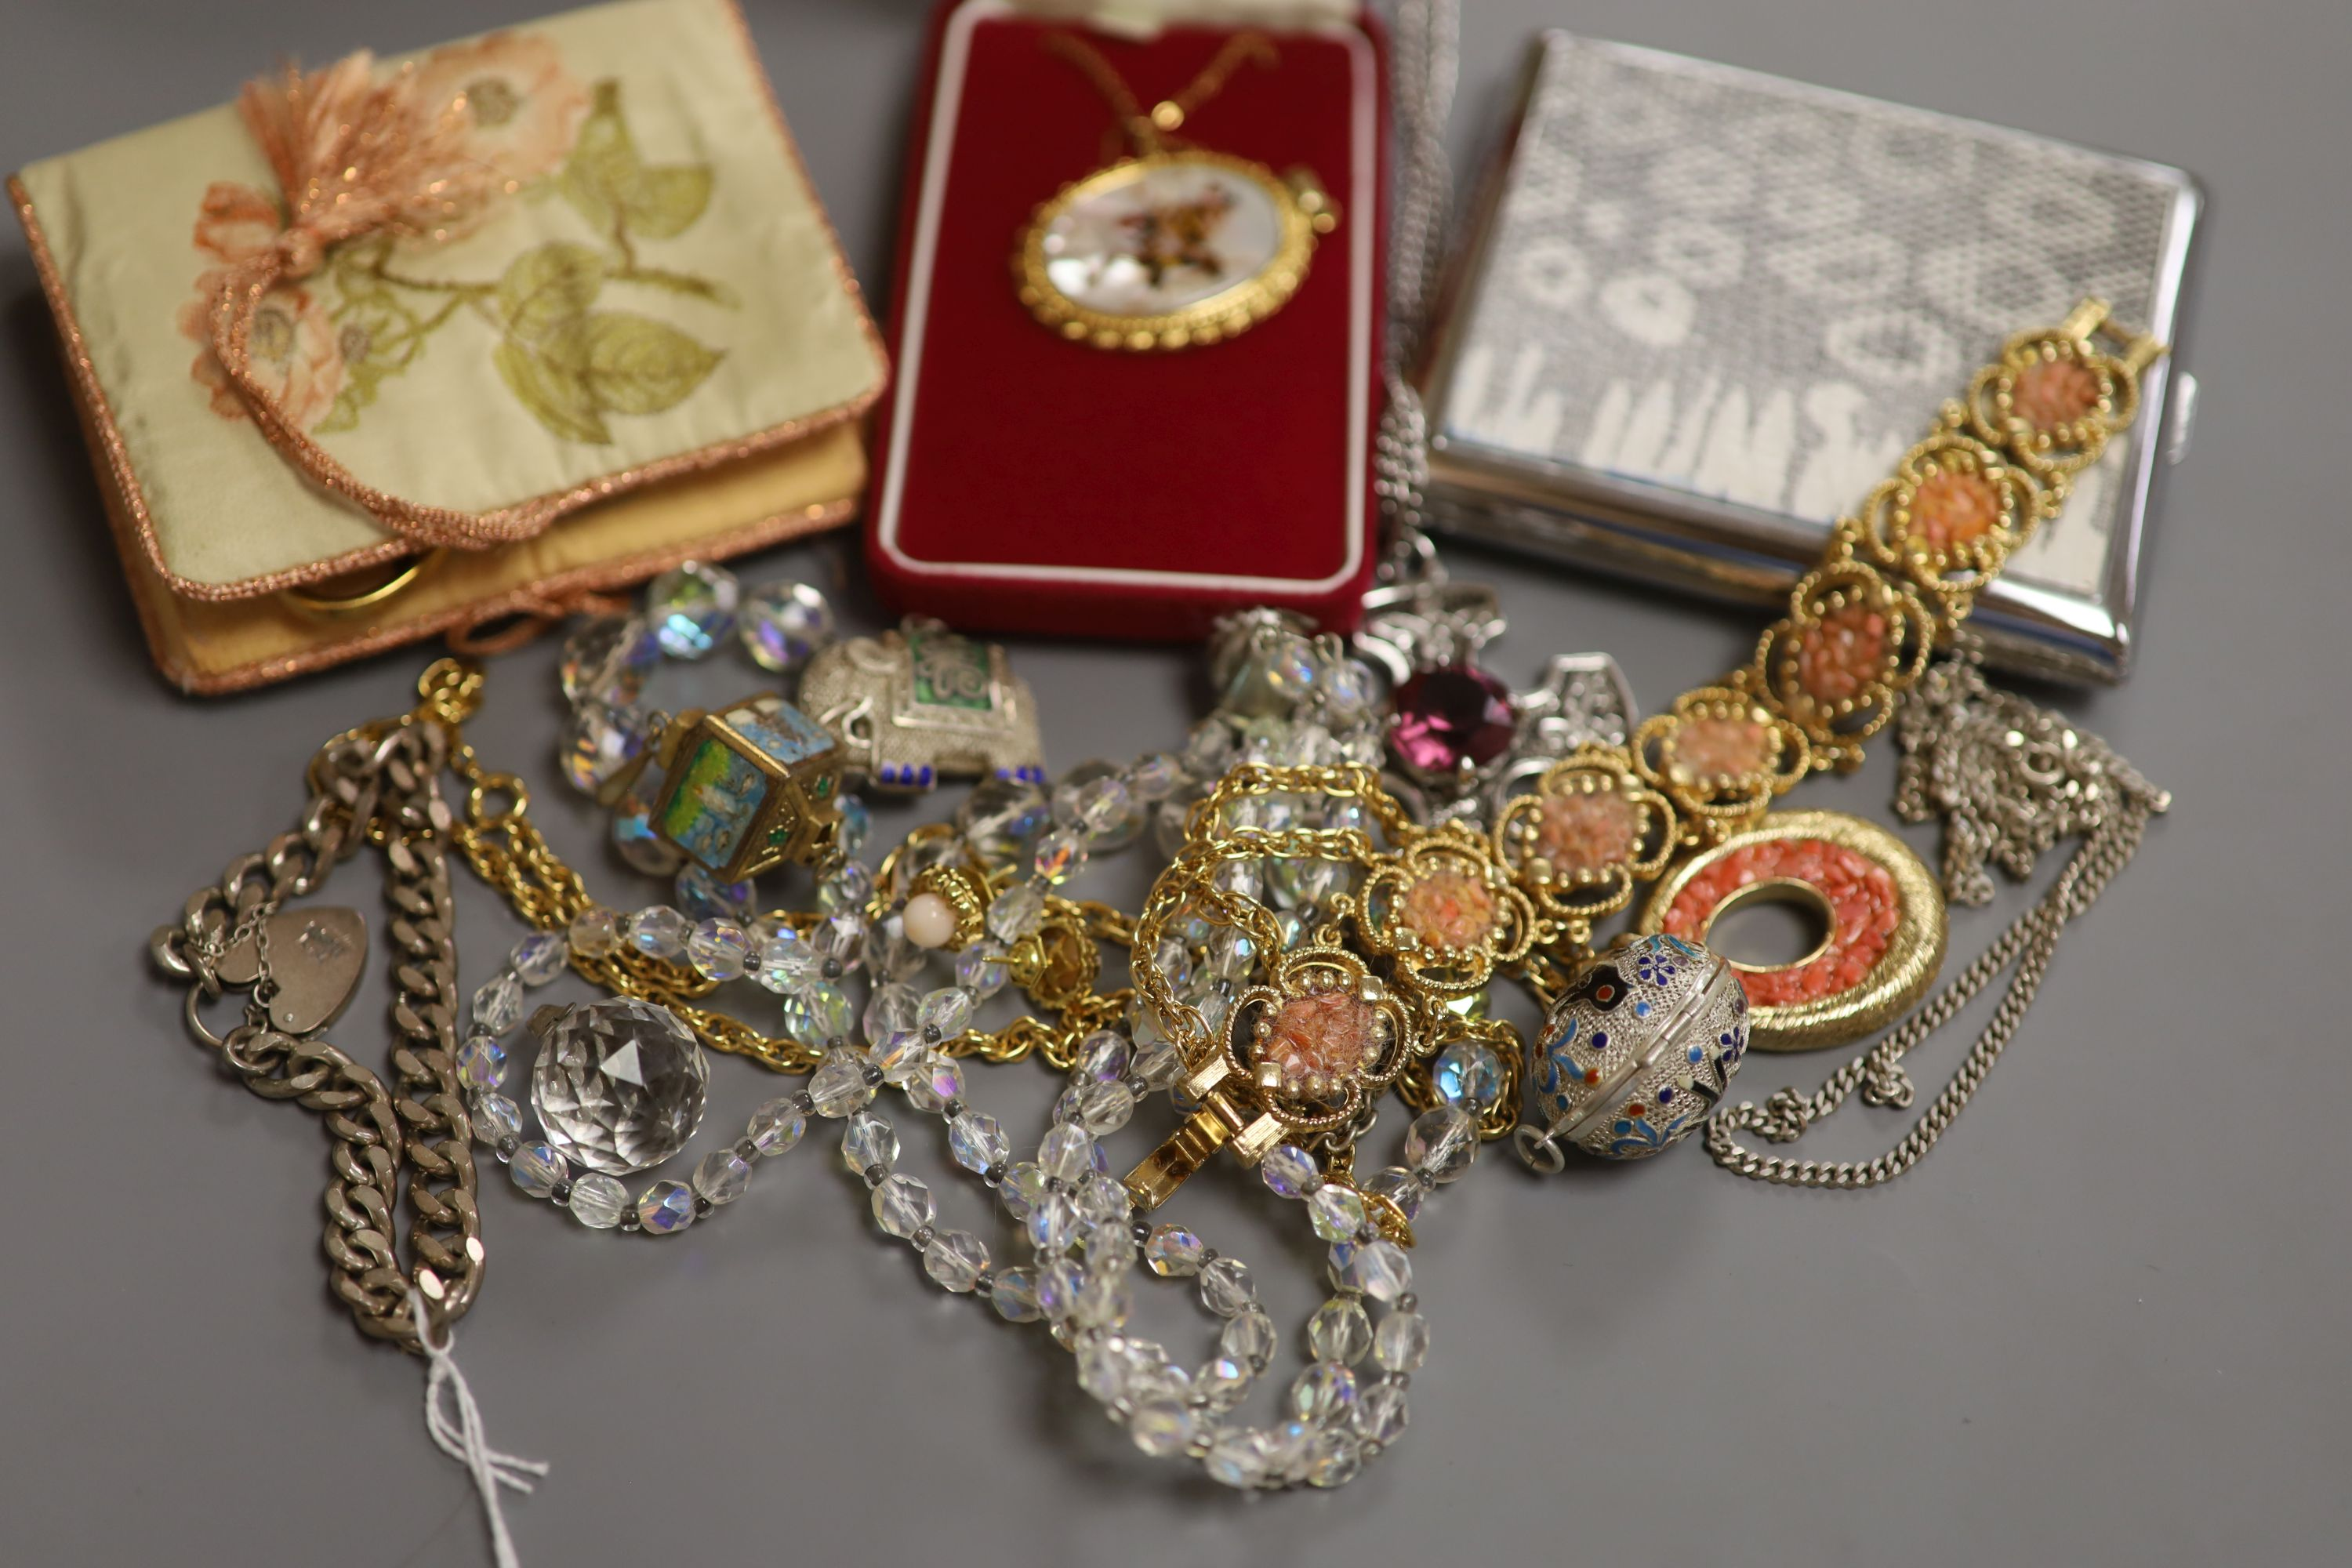 Mixed jewellery including silver bracelet, costume jewellery and a cigarette case. - Image 3 of 3